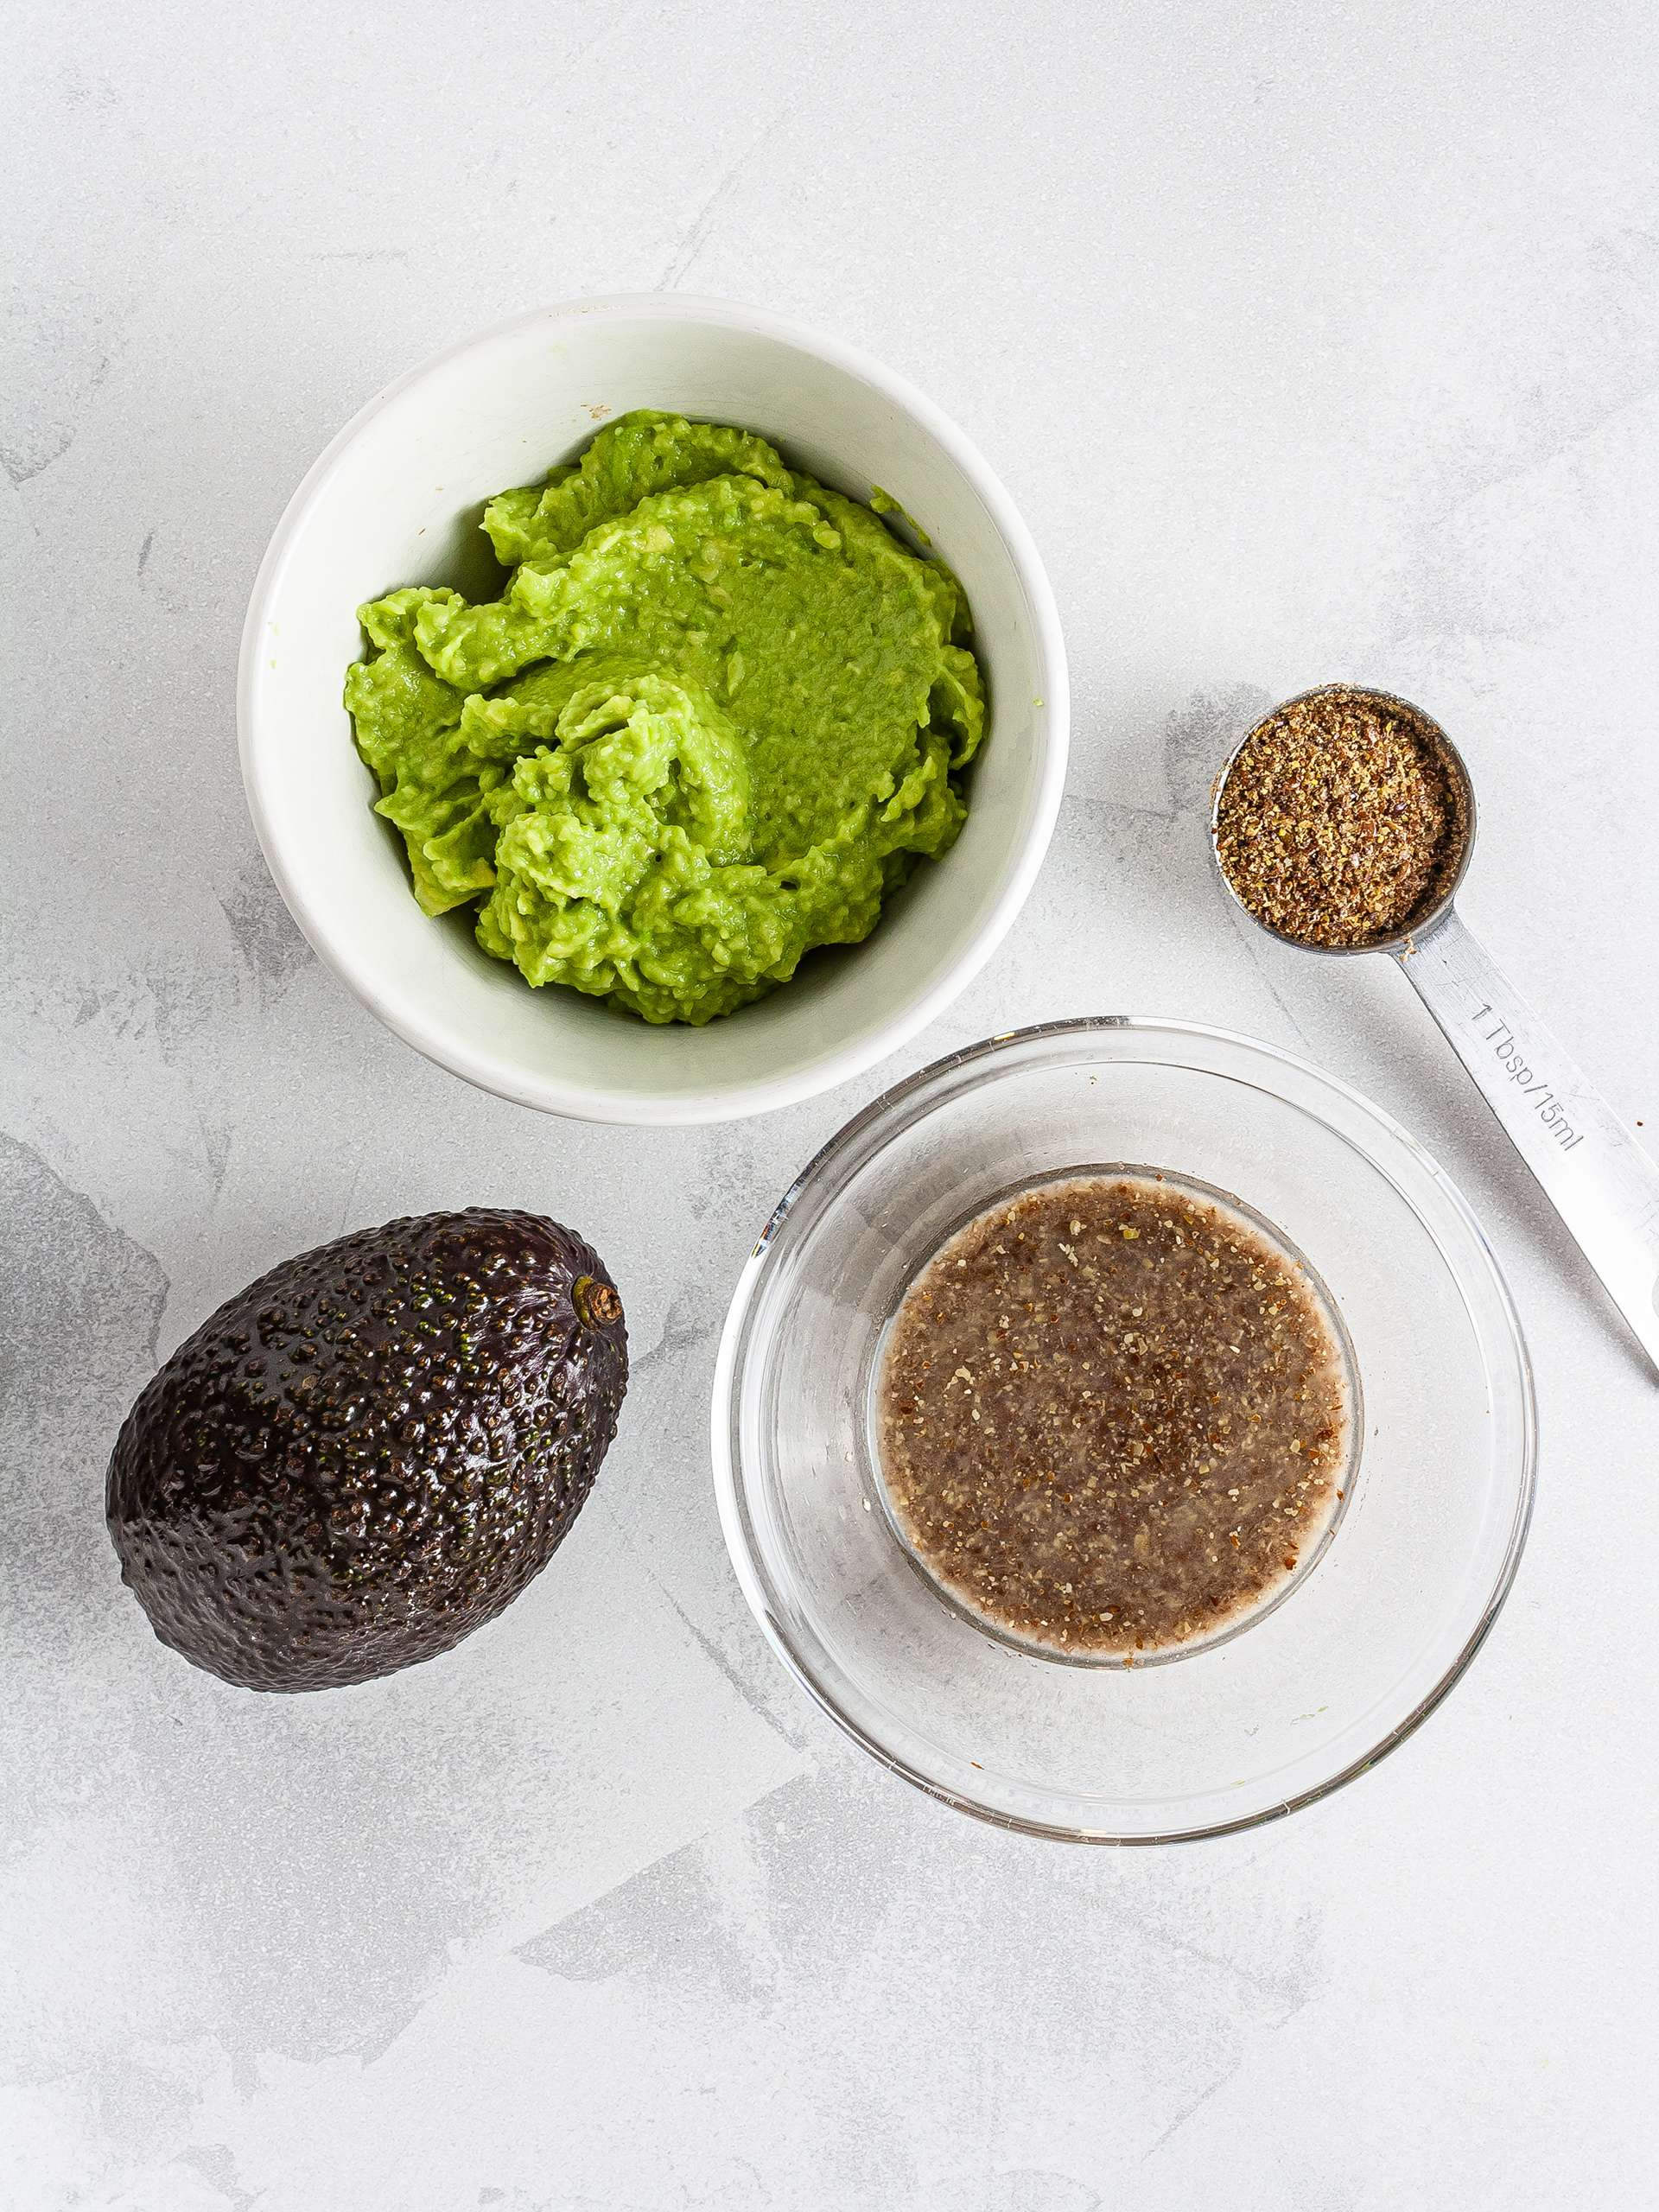 Mashed avocado and flax seeds